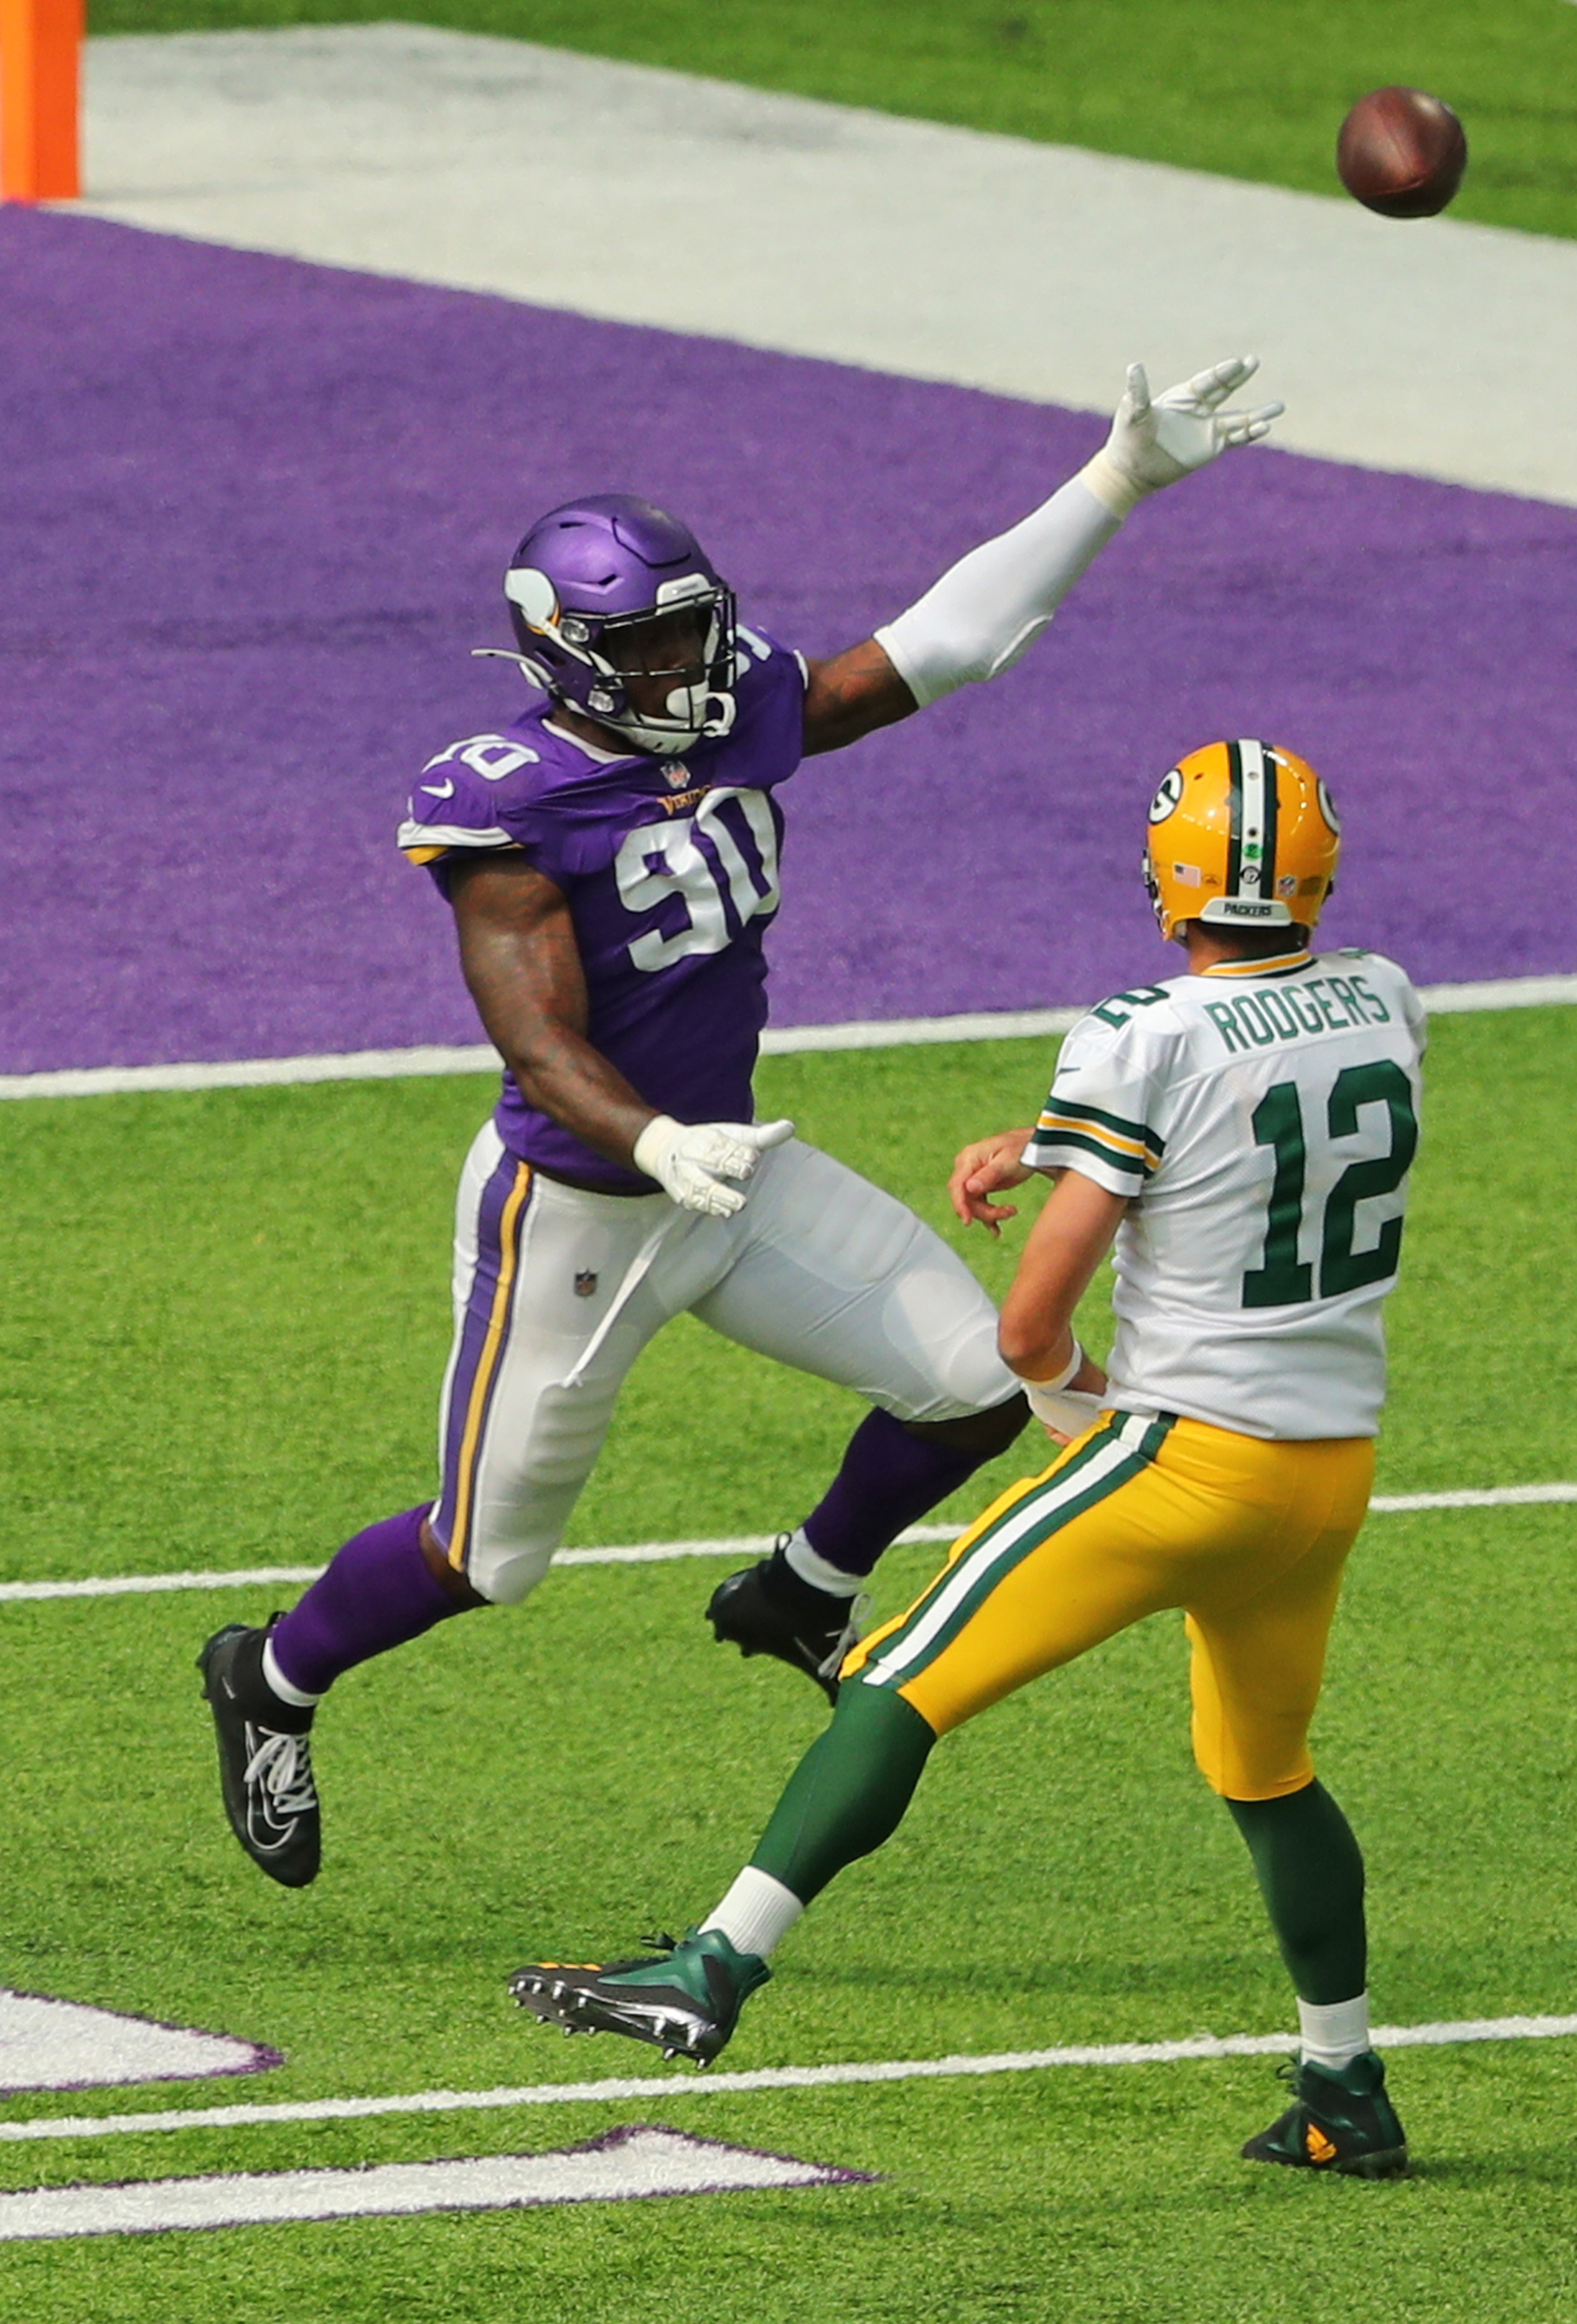 MINNEAPOLIS, MN - SEPTEMBER 13: Aaron Rodgers #12 of the Green Bay Packers passes while under pressure from Jalyn Holmes #90 of the Minnesota Vikings in the fourth quarter against the Minnesota Vikings at U.S. Bank Stadium on September 13, 2020 in Minneapolis, Minnesota. The Green Bay Packers defeated the Minnesota Vikings 43-34.(Photo by Adam Bettcher/Getty Images)